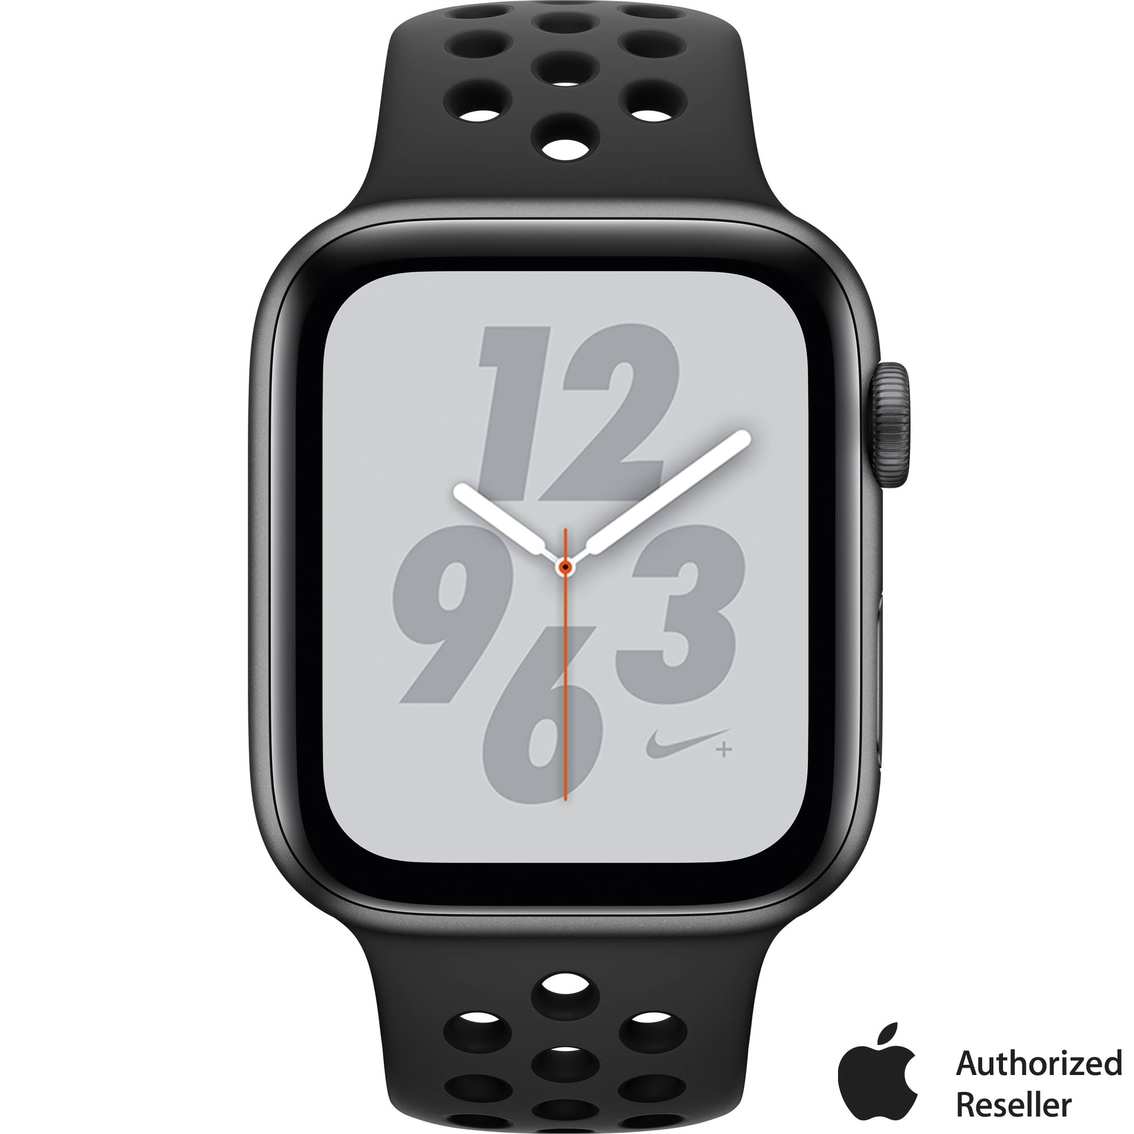 833a118801e84 Apple Watch Nike+ Series 4 GPS + Cellular Aluminum Case with Black Nike Sport  Band